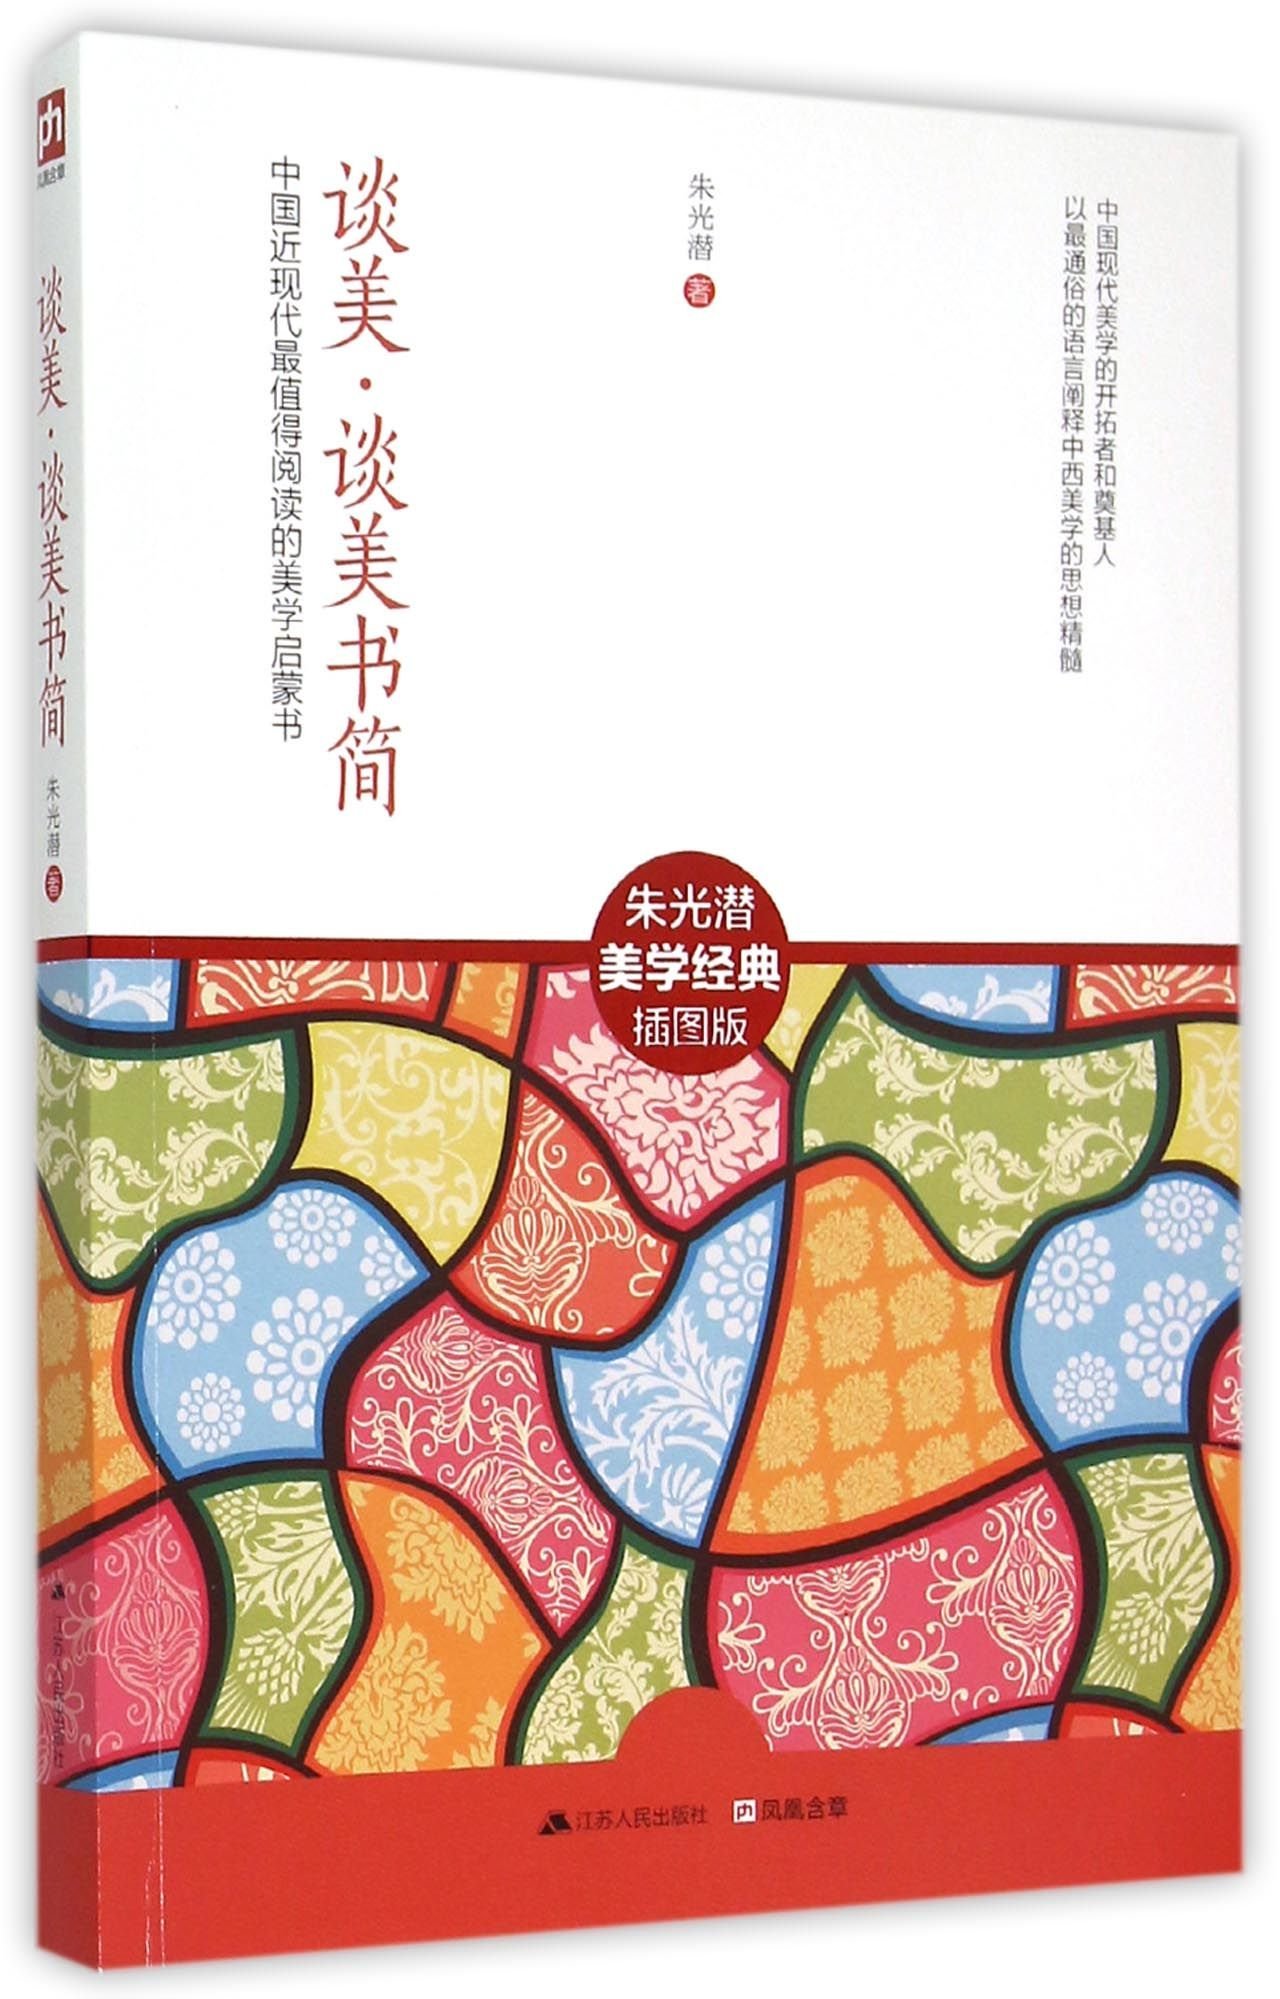 Read Online On the US * The Beauty Tablets(Chinese Edition) ebook